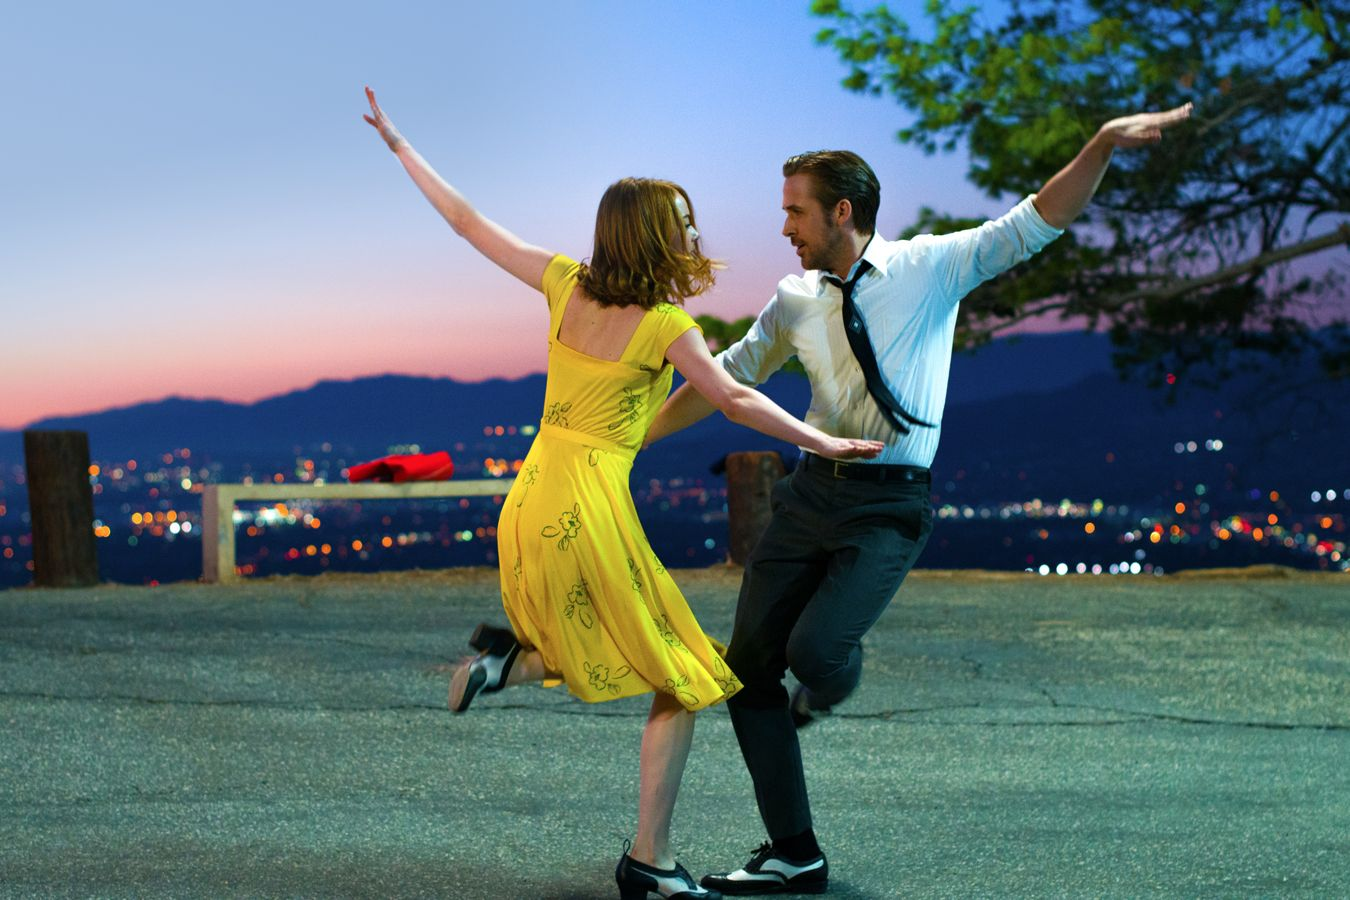 Here's Why I Don't Get The La La Land Hype